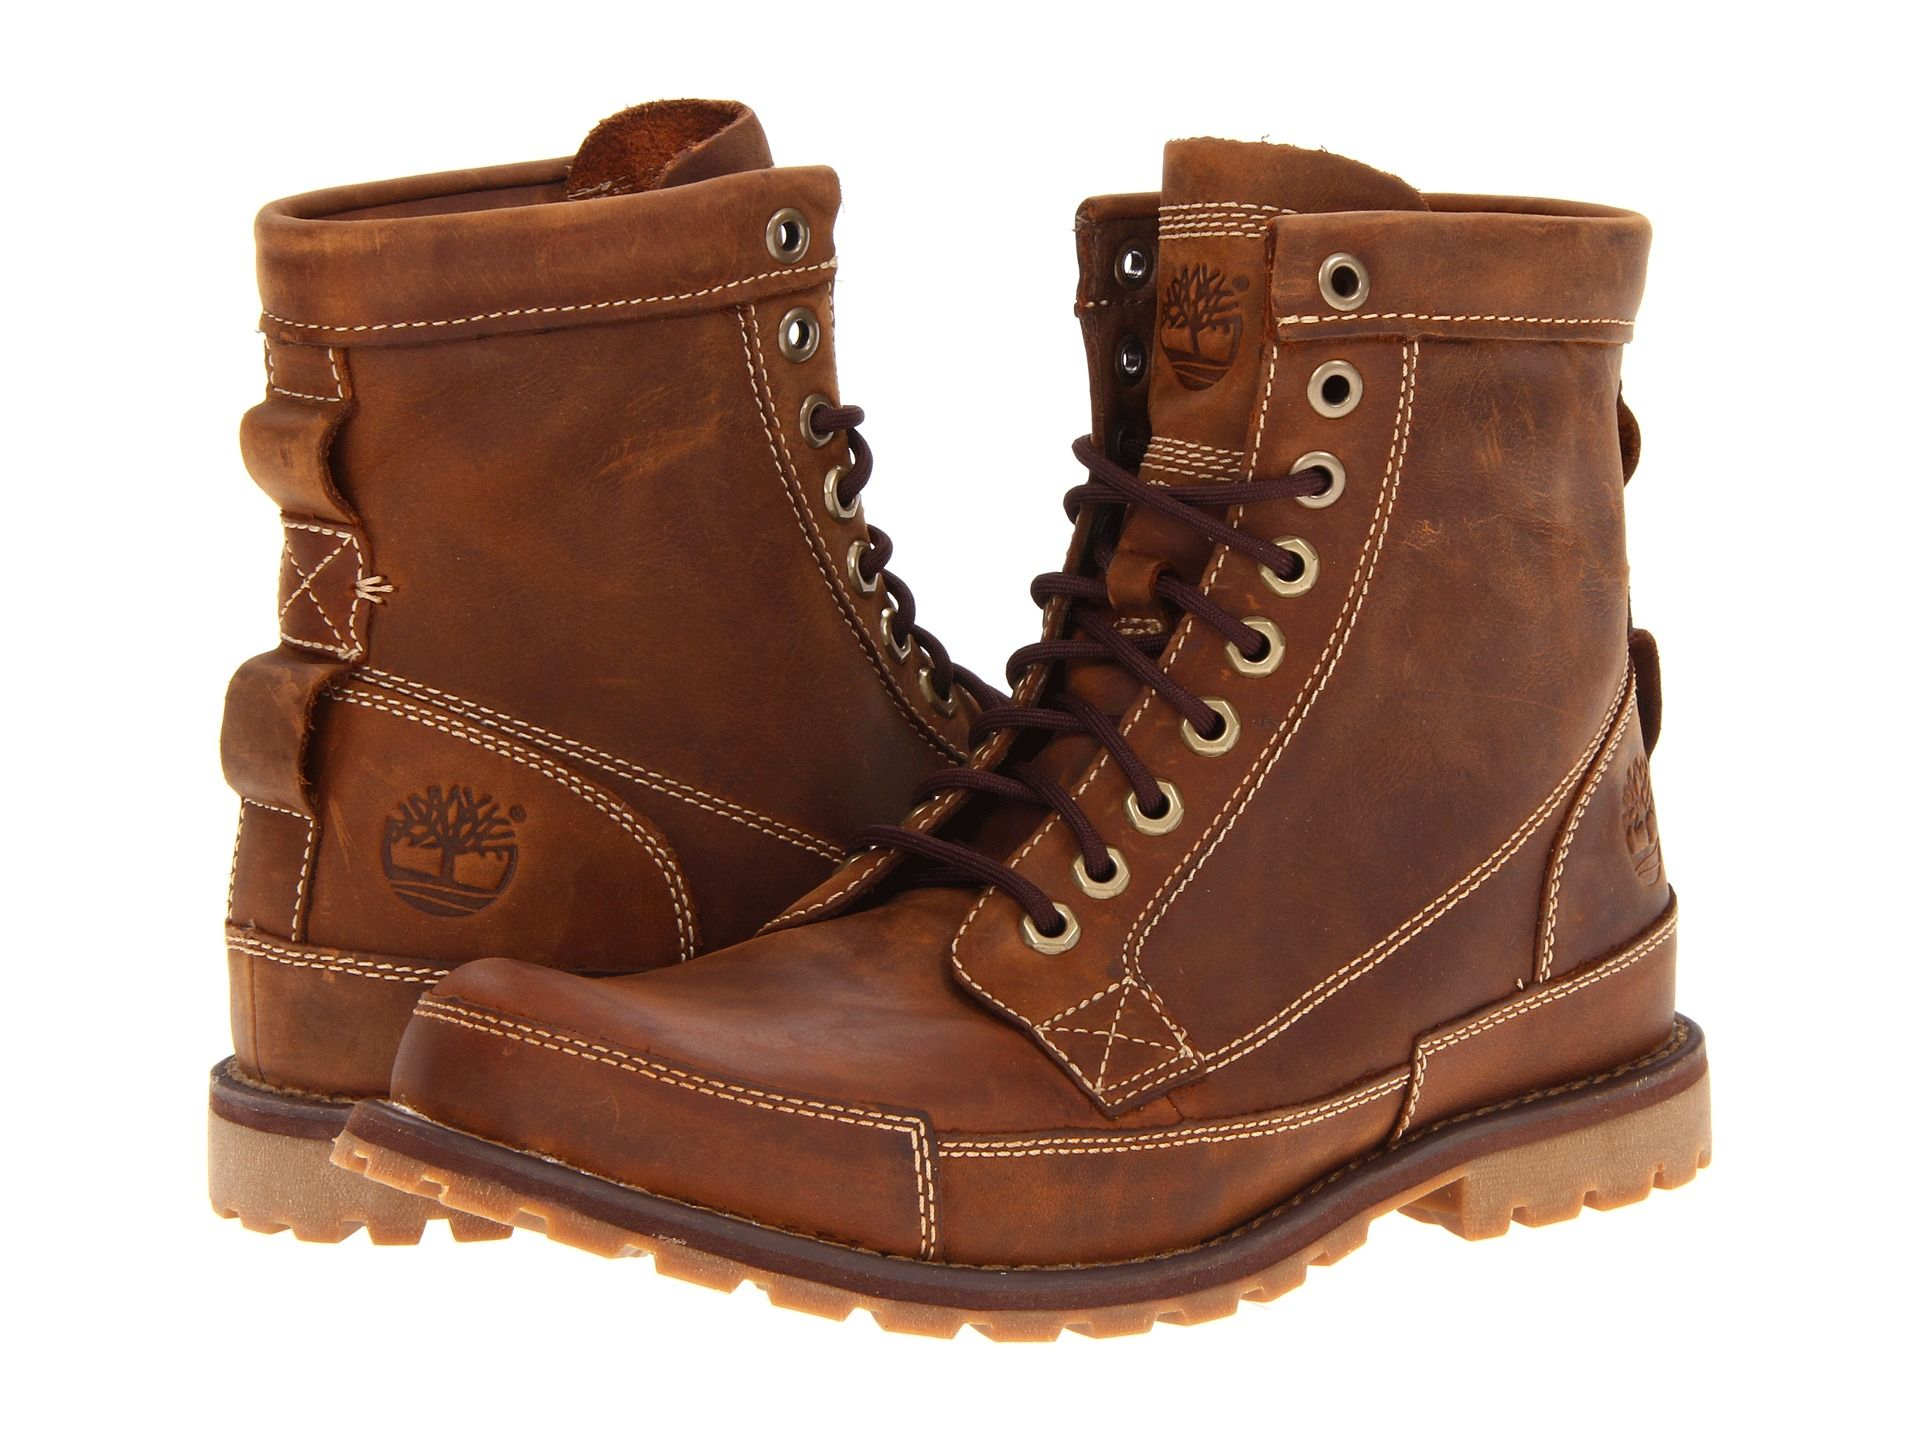 TIMBERLAND EARTHKEEPERS RUGGED ORIGINAL 6 LEATHER BOOT MENS SHOES ALL SIZES